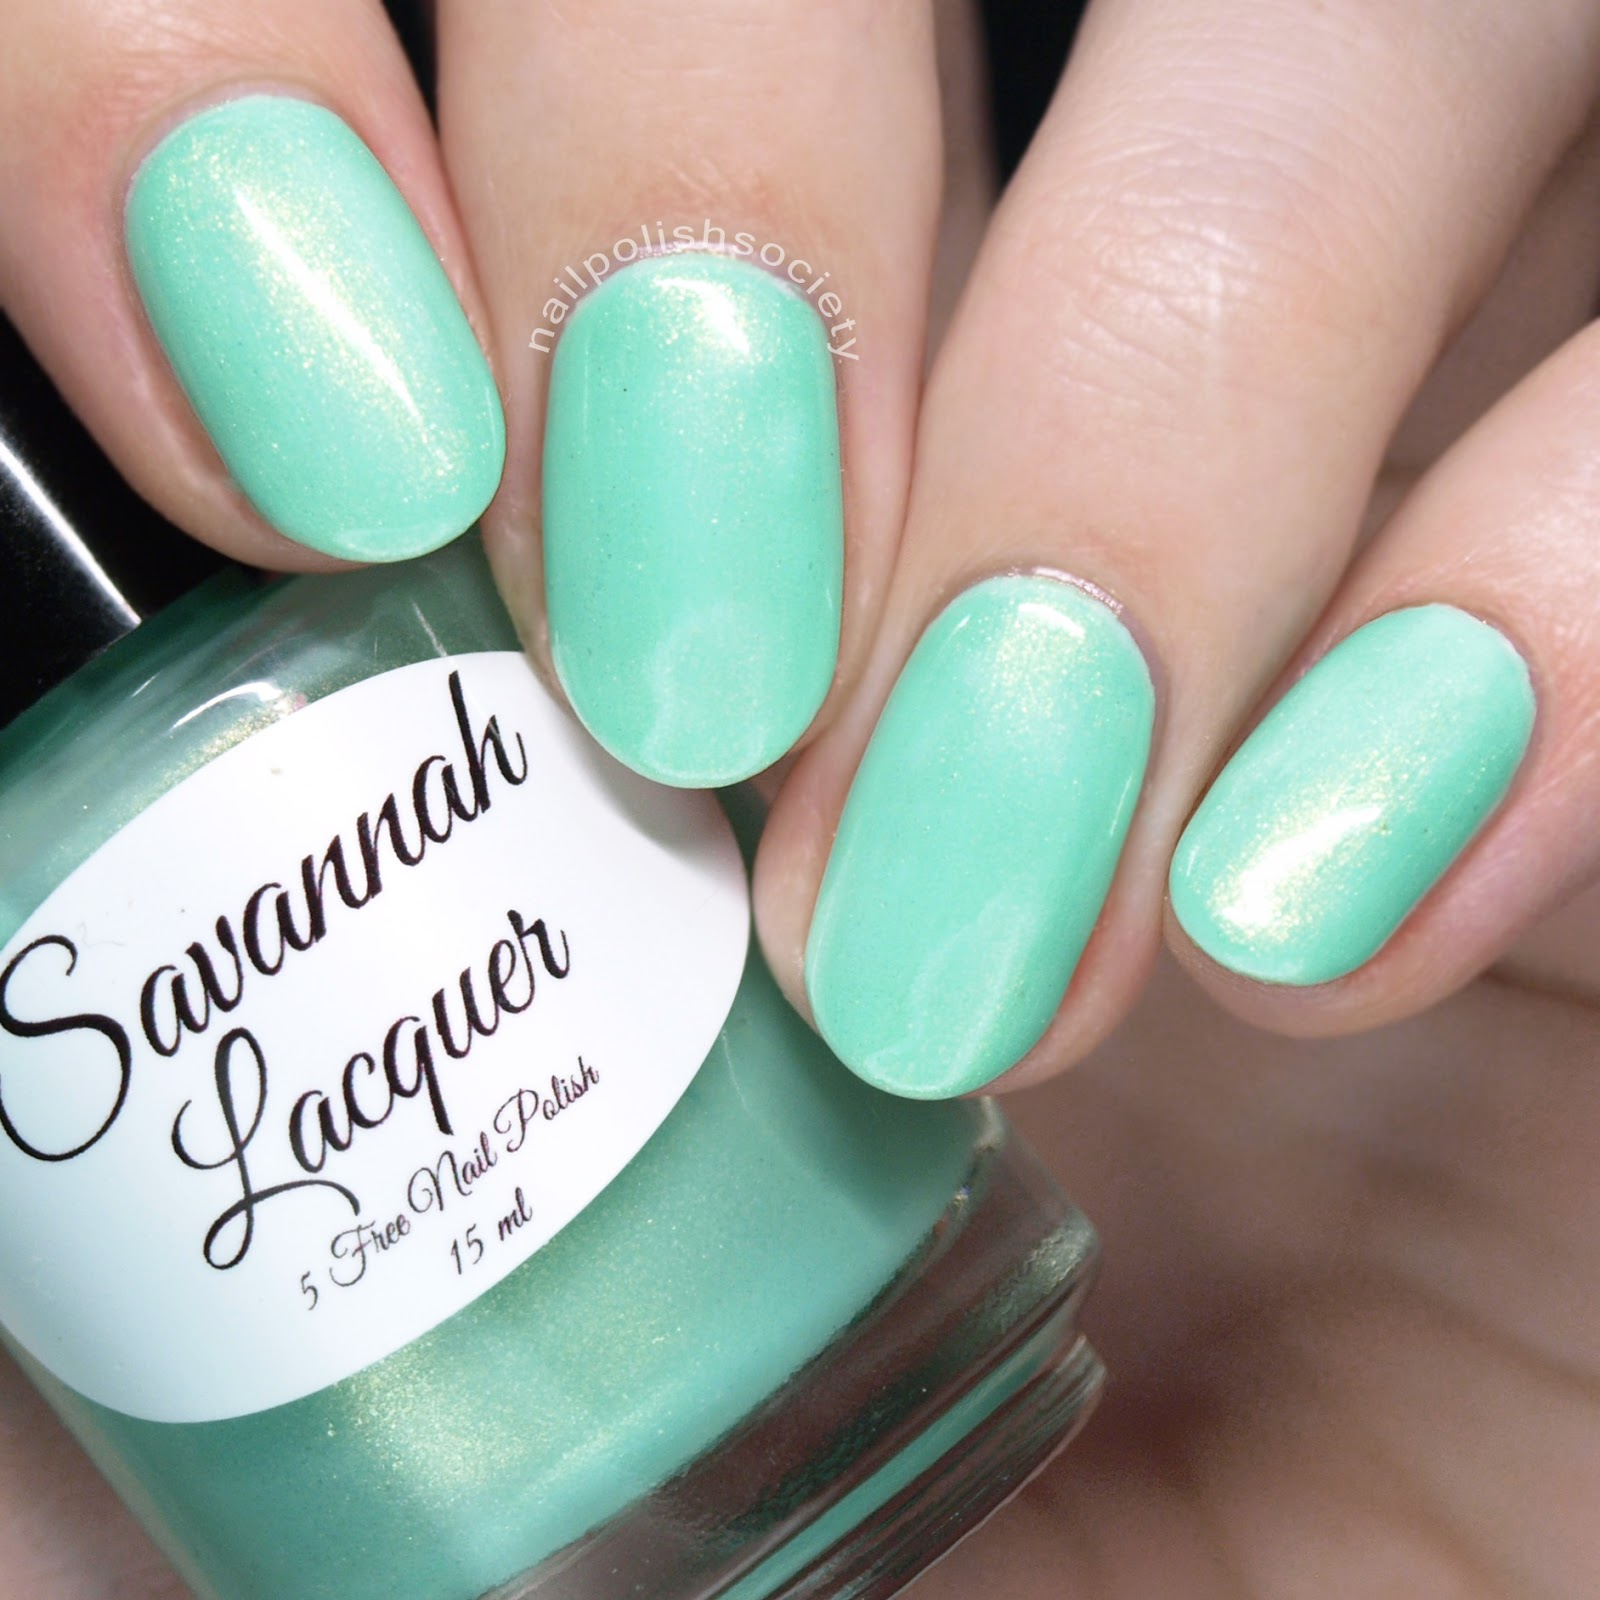 Nail Polish Society: Savannah Lacquer Salt Water Taffy Part 2 Collection